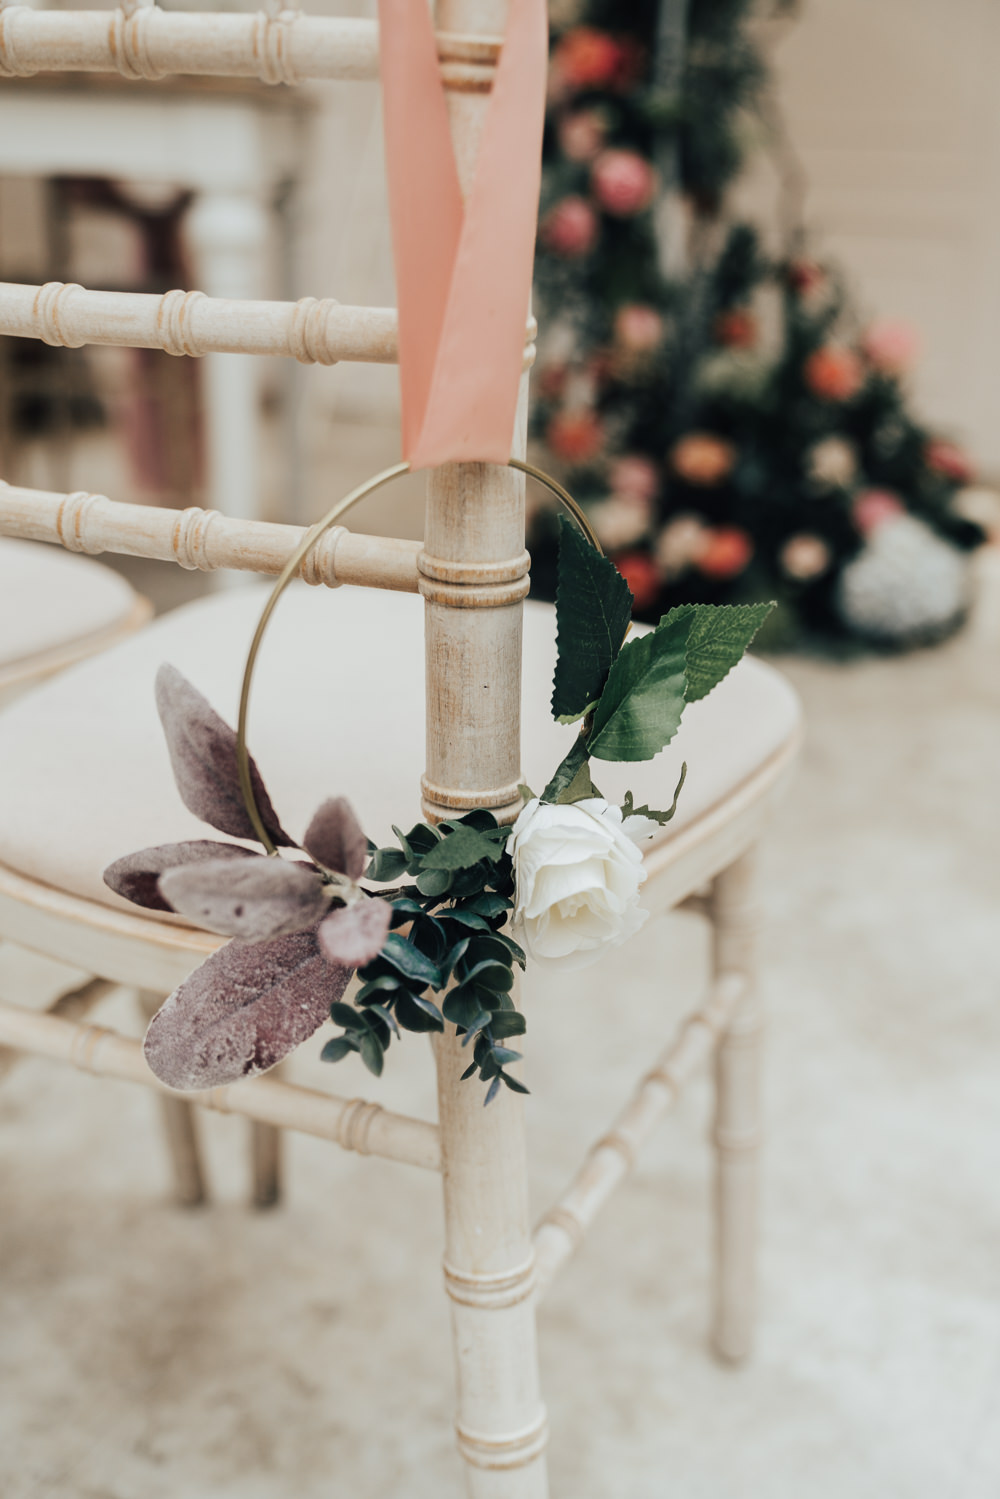 Wreath Flowers Pew End Aisle Ceremony Chair Hoop Wedding Ideas Rebecca Carpenter Photography